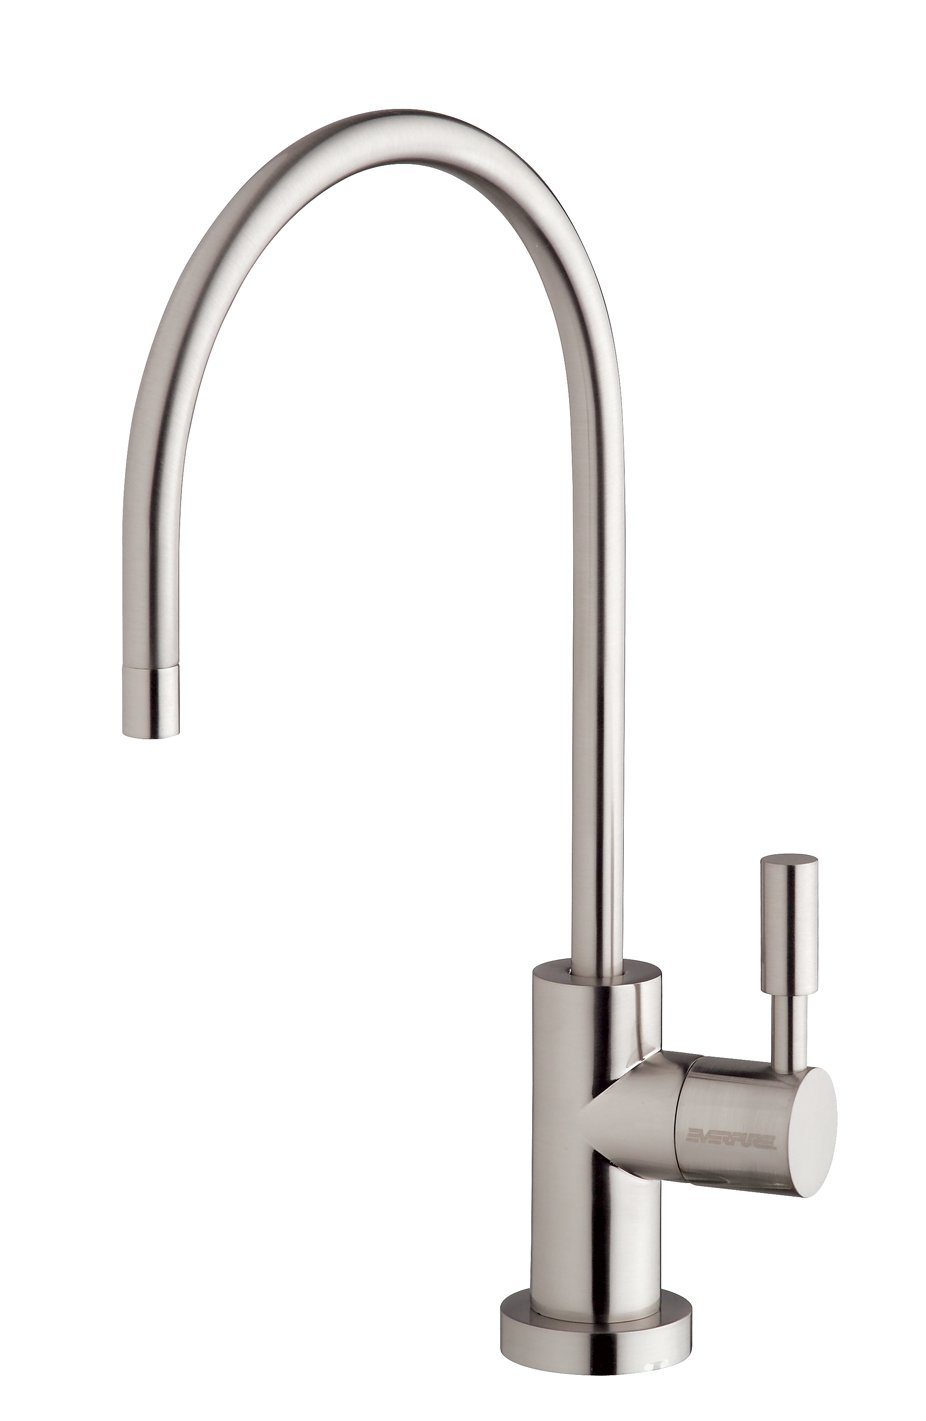 Everpure EV9970 59 Designer Series Drinking Water Faucet, Brushed Nickel    Faucet Mount Water Filters   Amazon.com